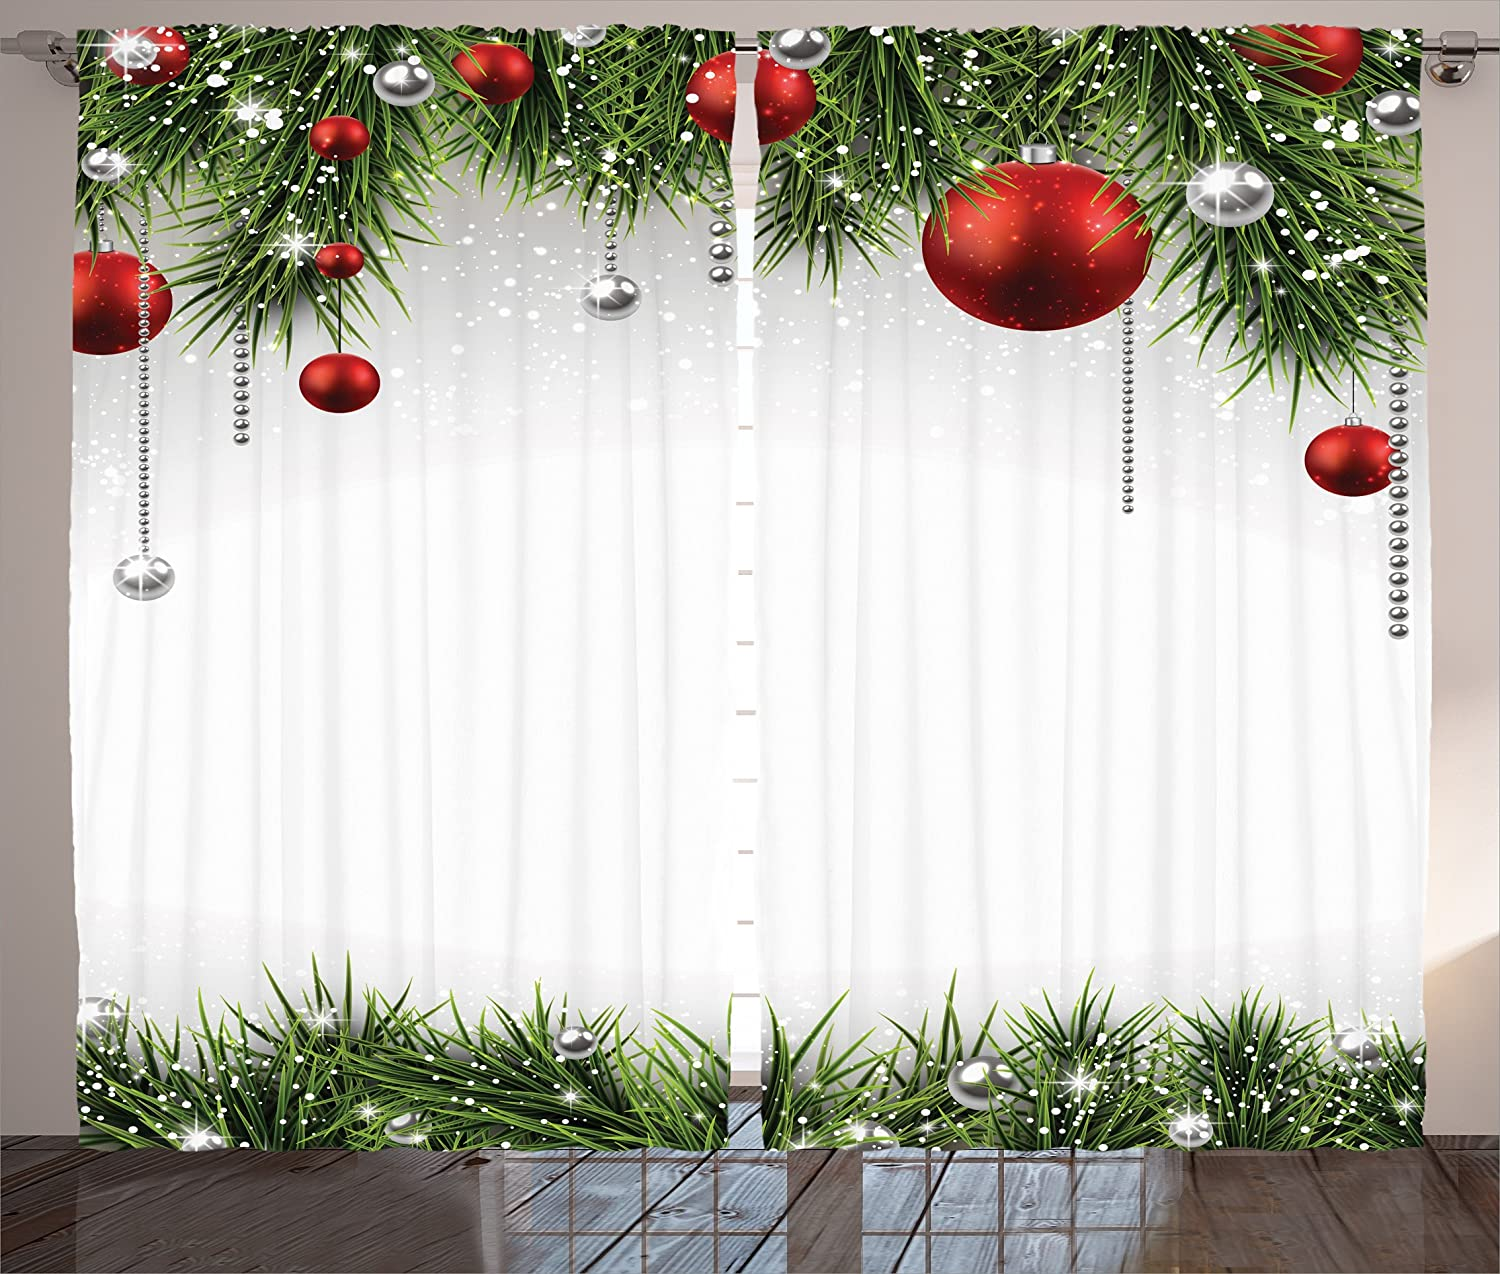 Ambesonne Christmas Decorations Curtains, Classical Christmas Ornaments and Baubles on Pine Tree Twig Tinsel Picture Print, Living Room Bedroom Decor, 2 Panel Set, 108 W X 90 L Inches, Green Red